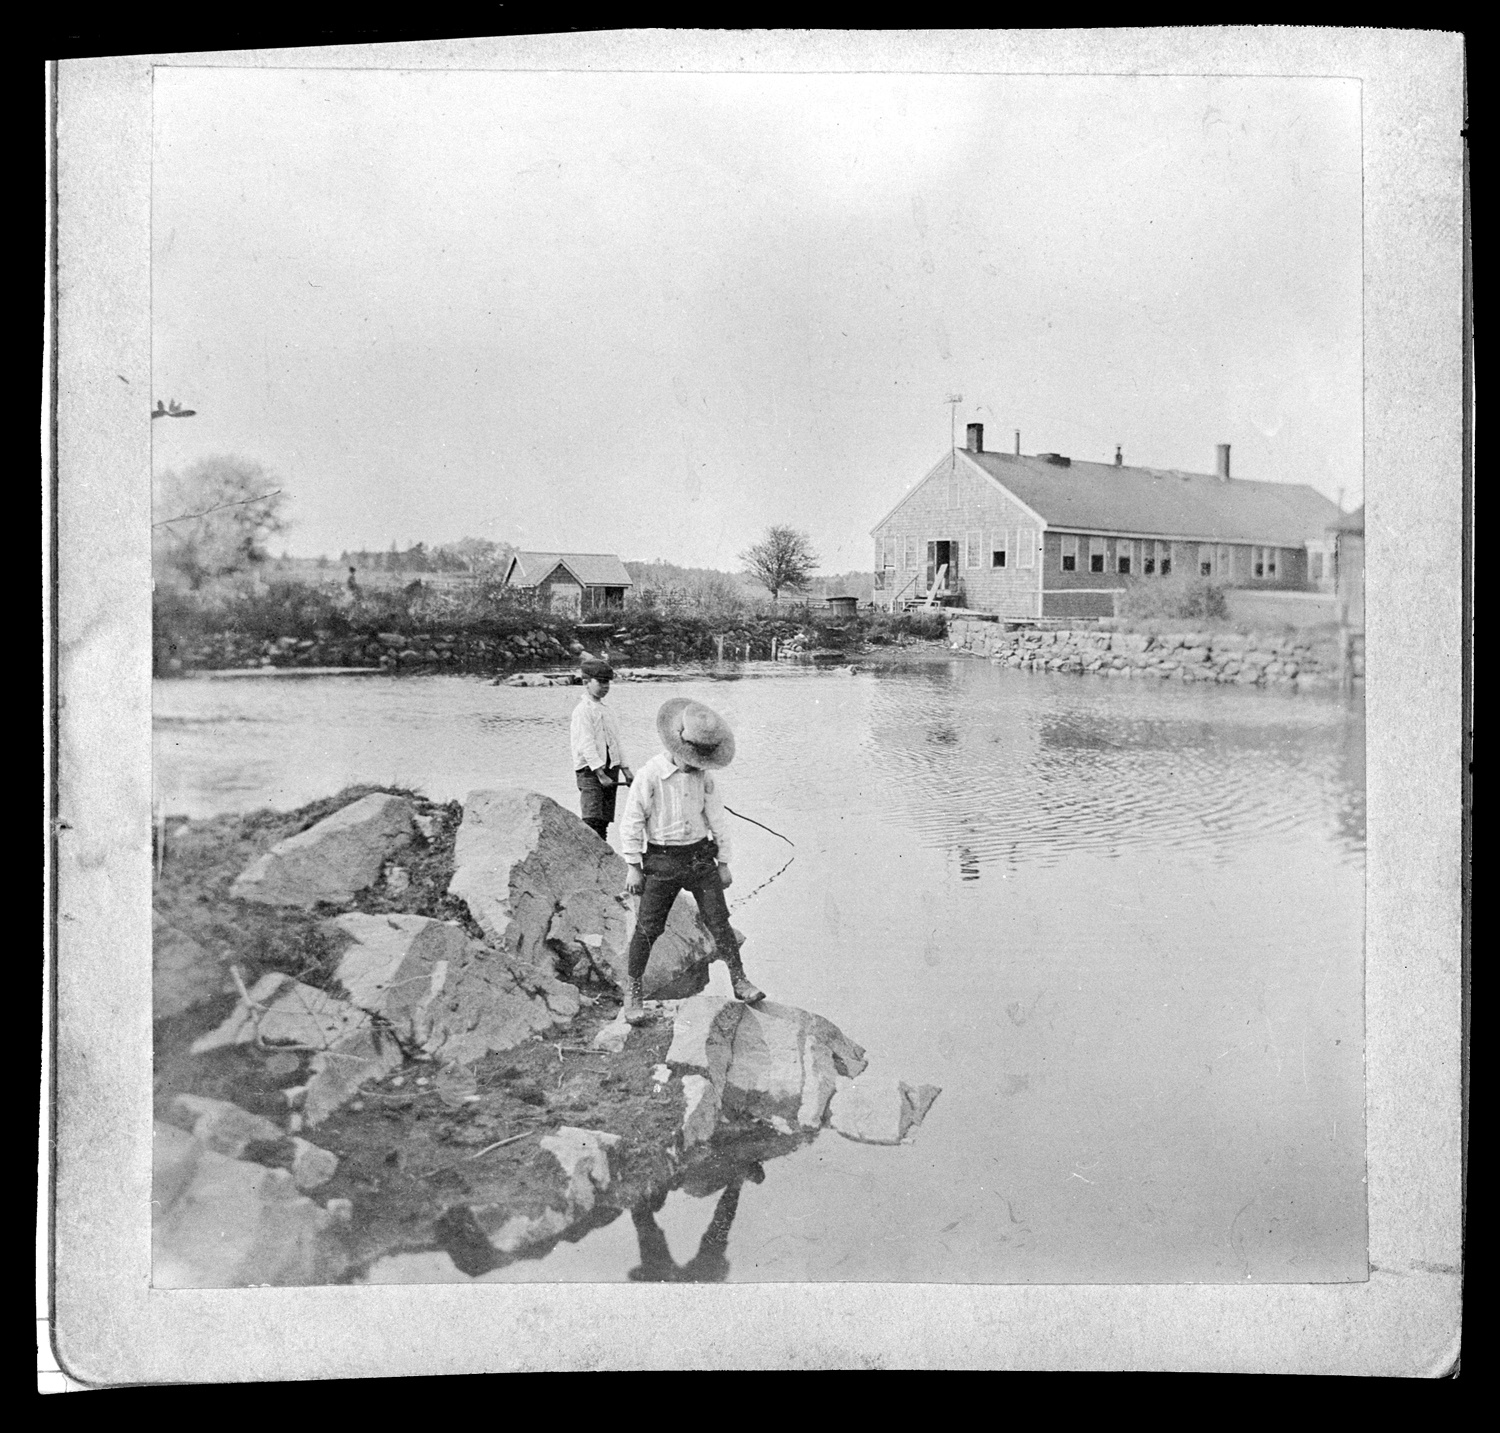 Two boys fishing in the millpond of C. Drew & Co., no date